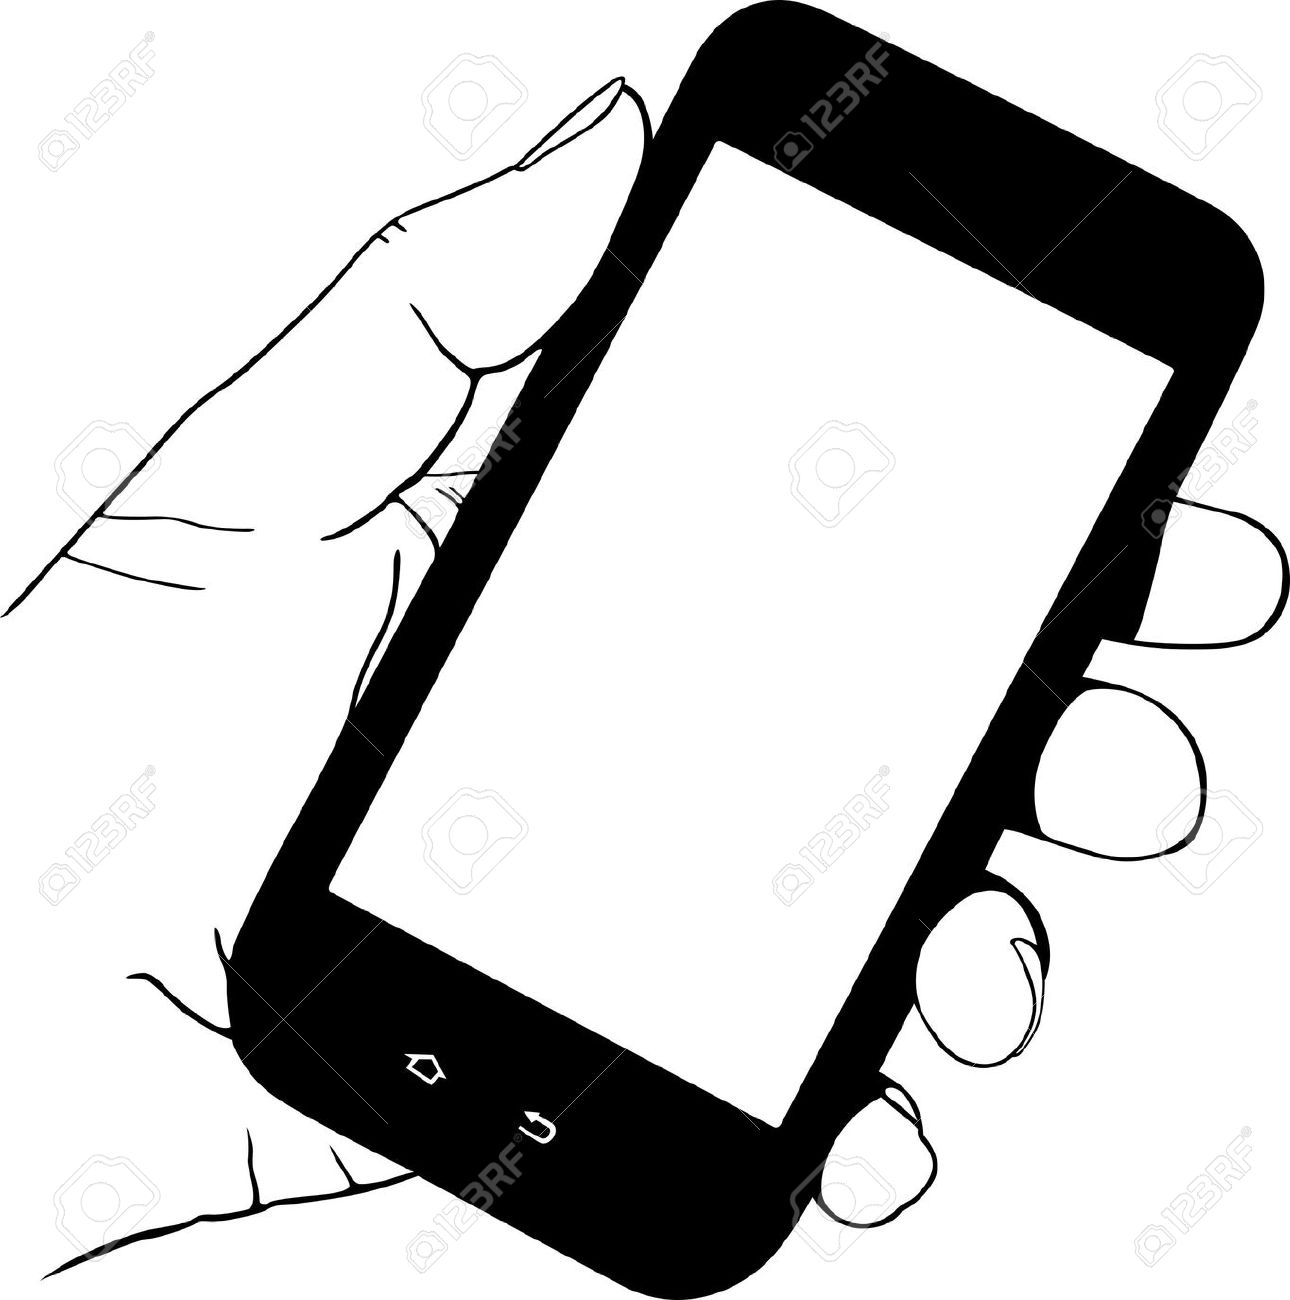 1290x1300 Phone Clipart Hand Holding